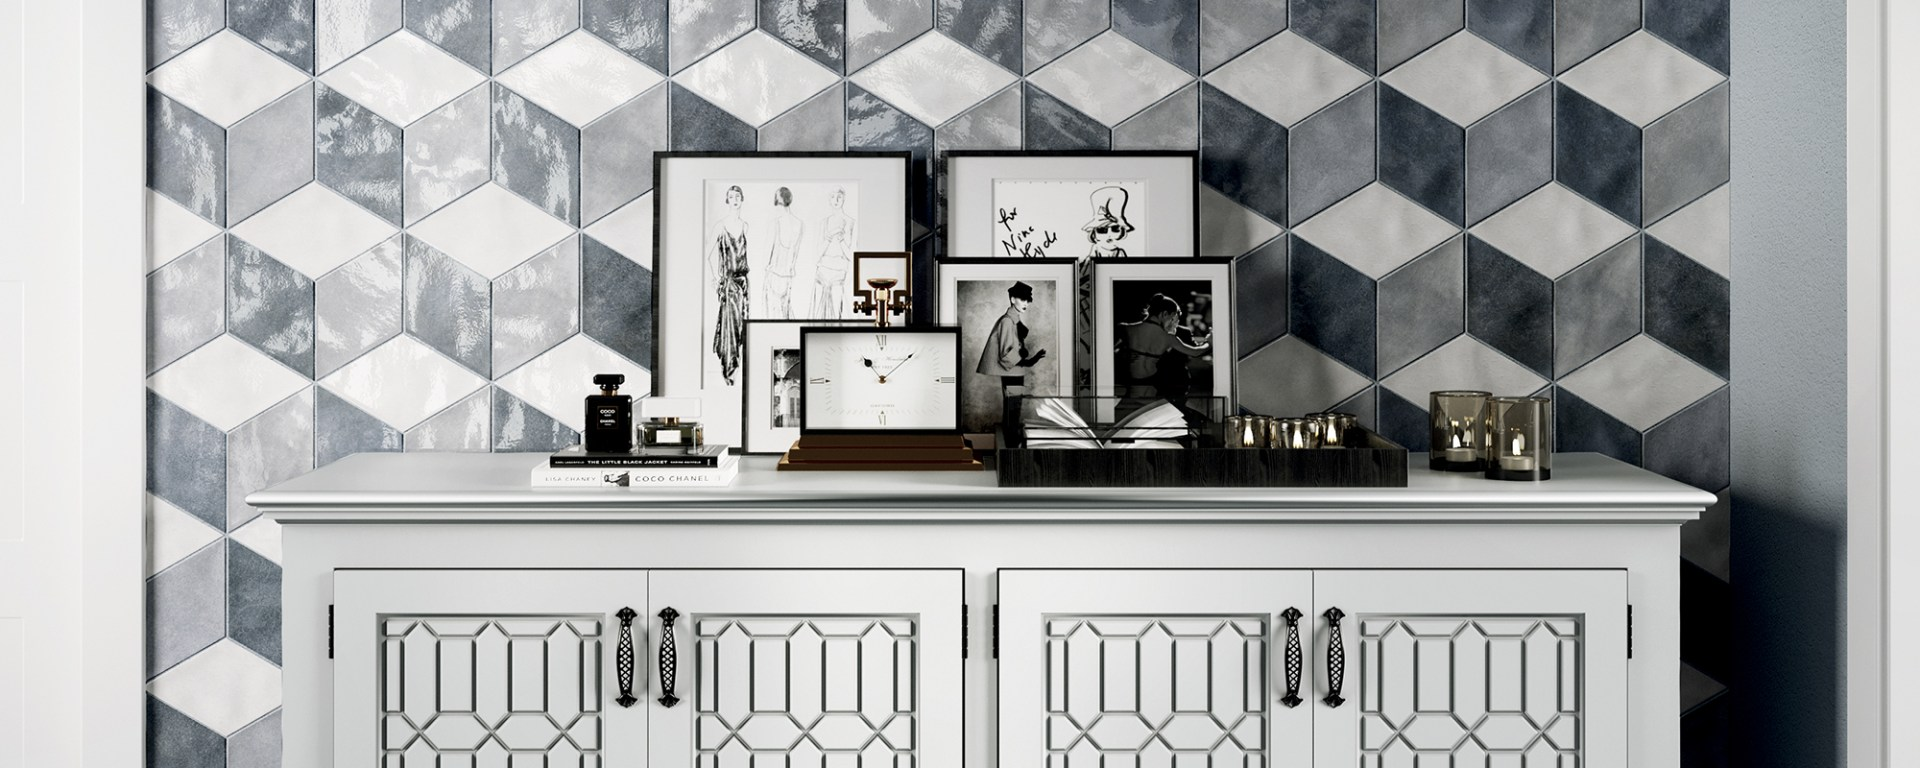 Matera Prima CIR Gruppo Romani new tile collection